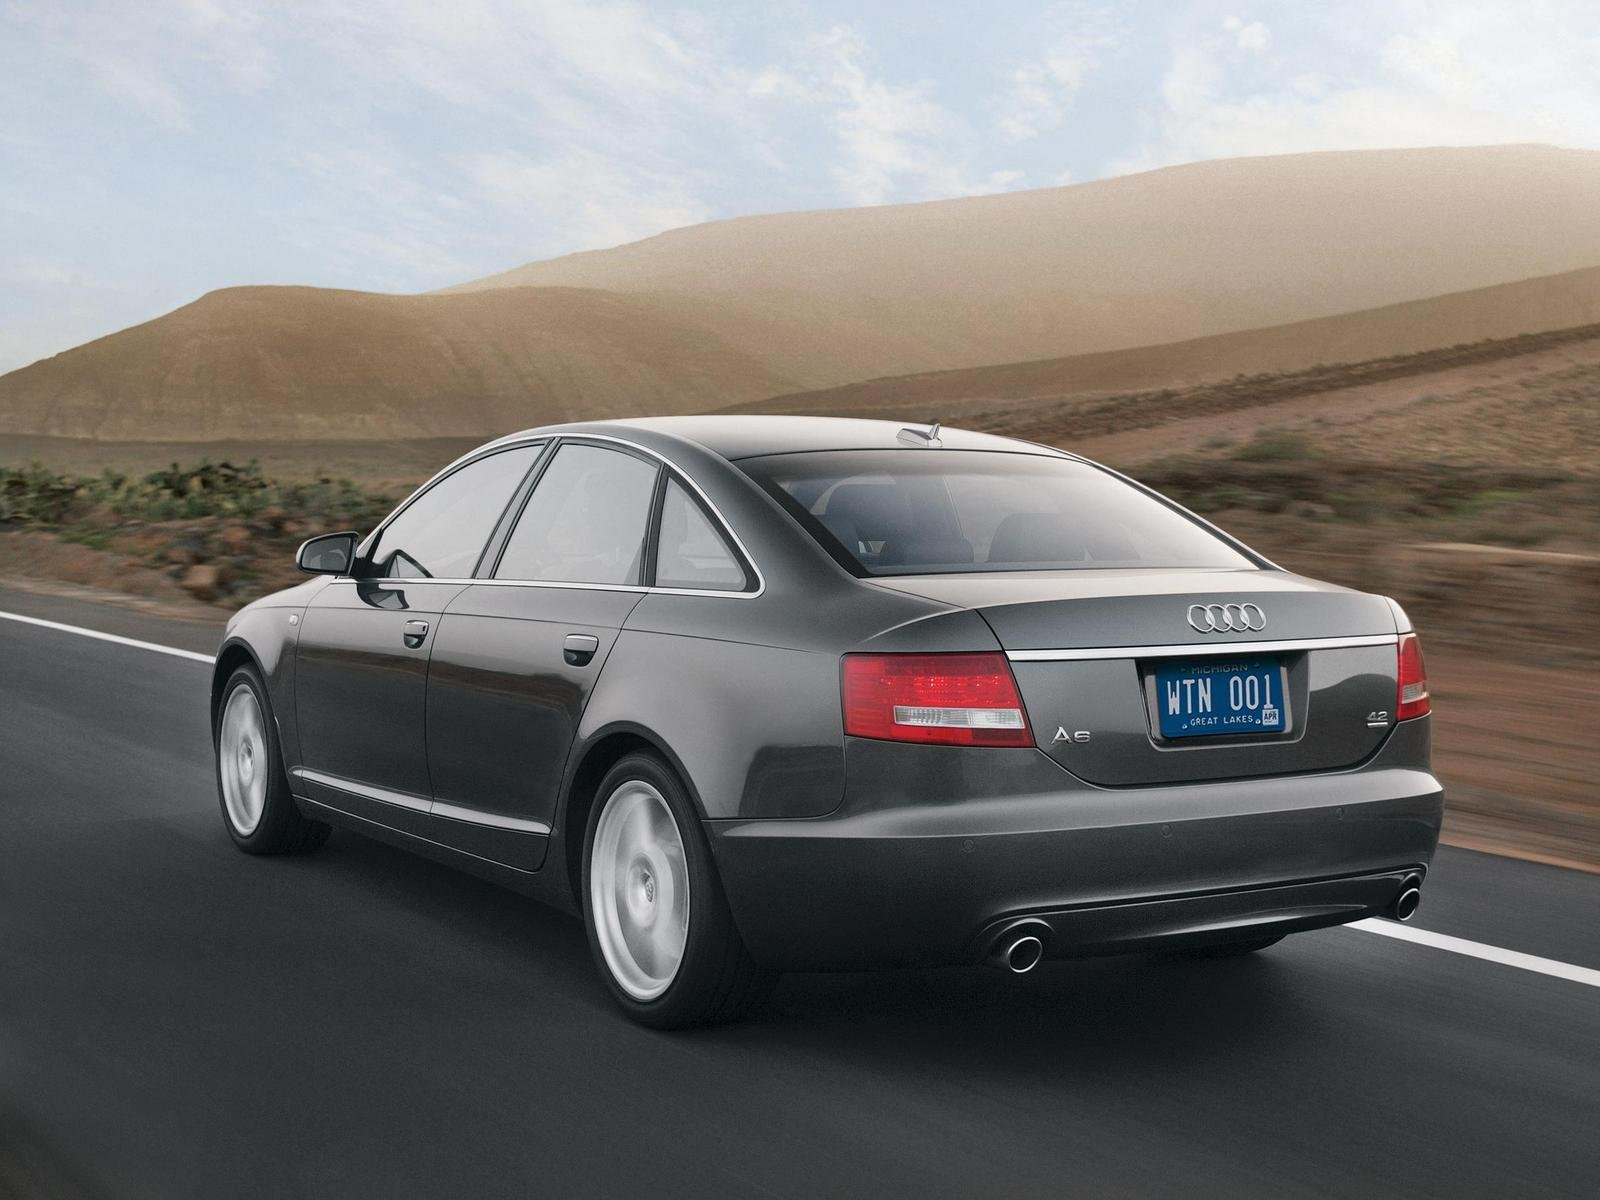 2007 audi a6 sedan picture 146513 car review top speed. Black Bedroom Furniture Sets. Home Design Ideas